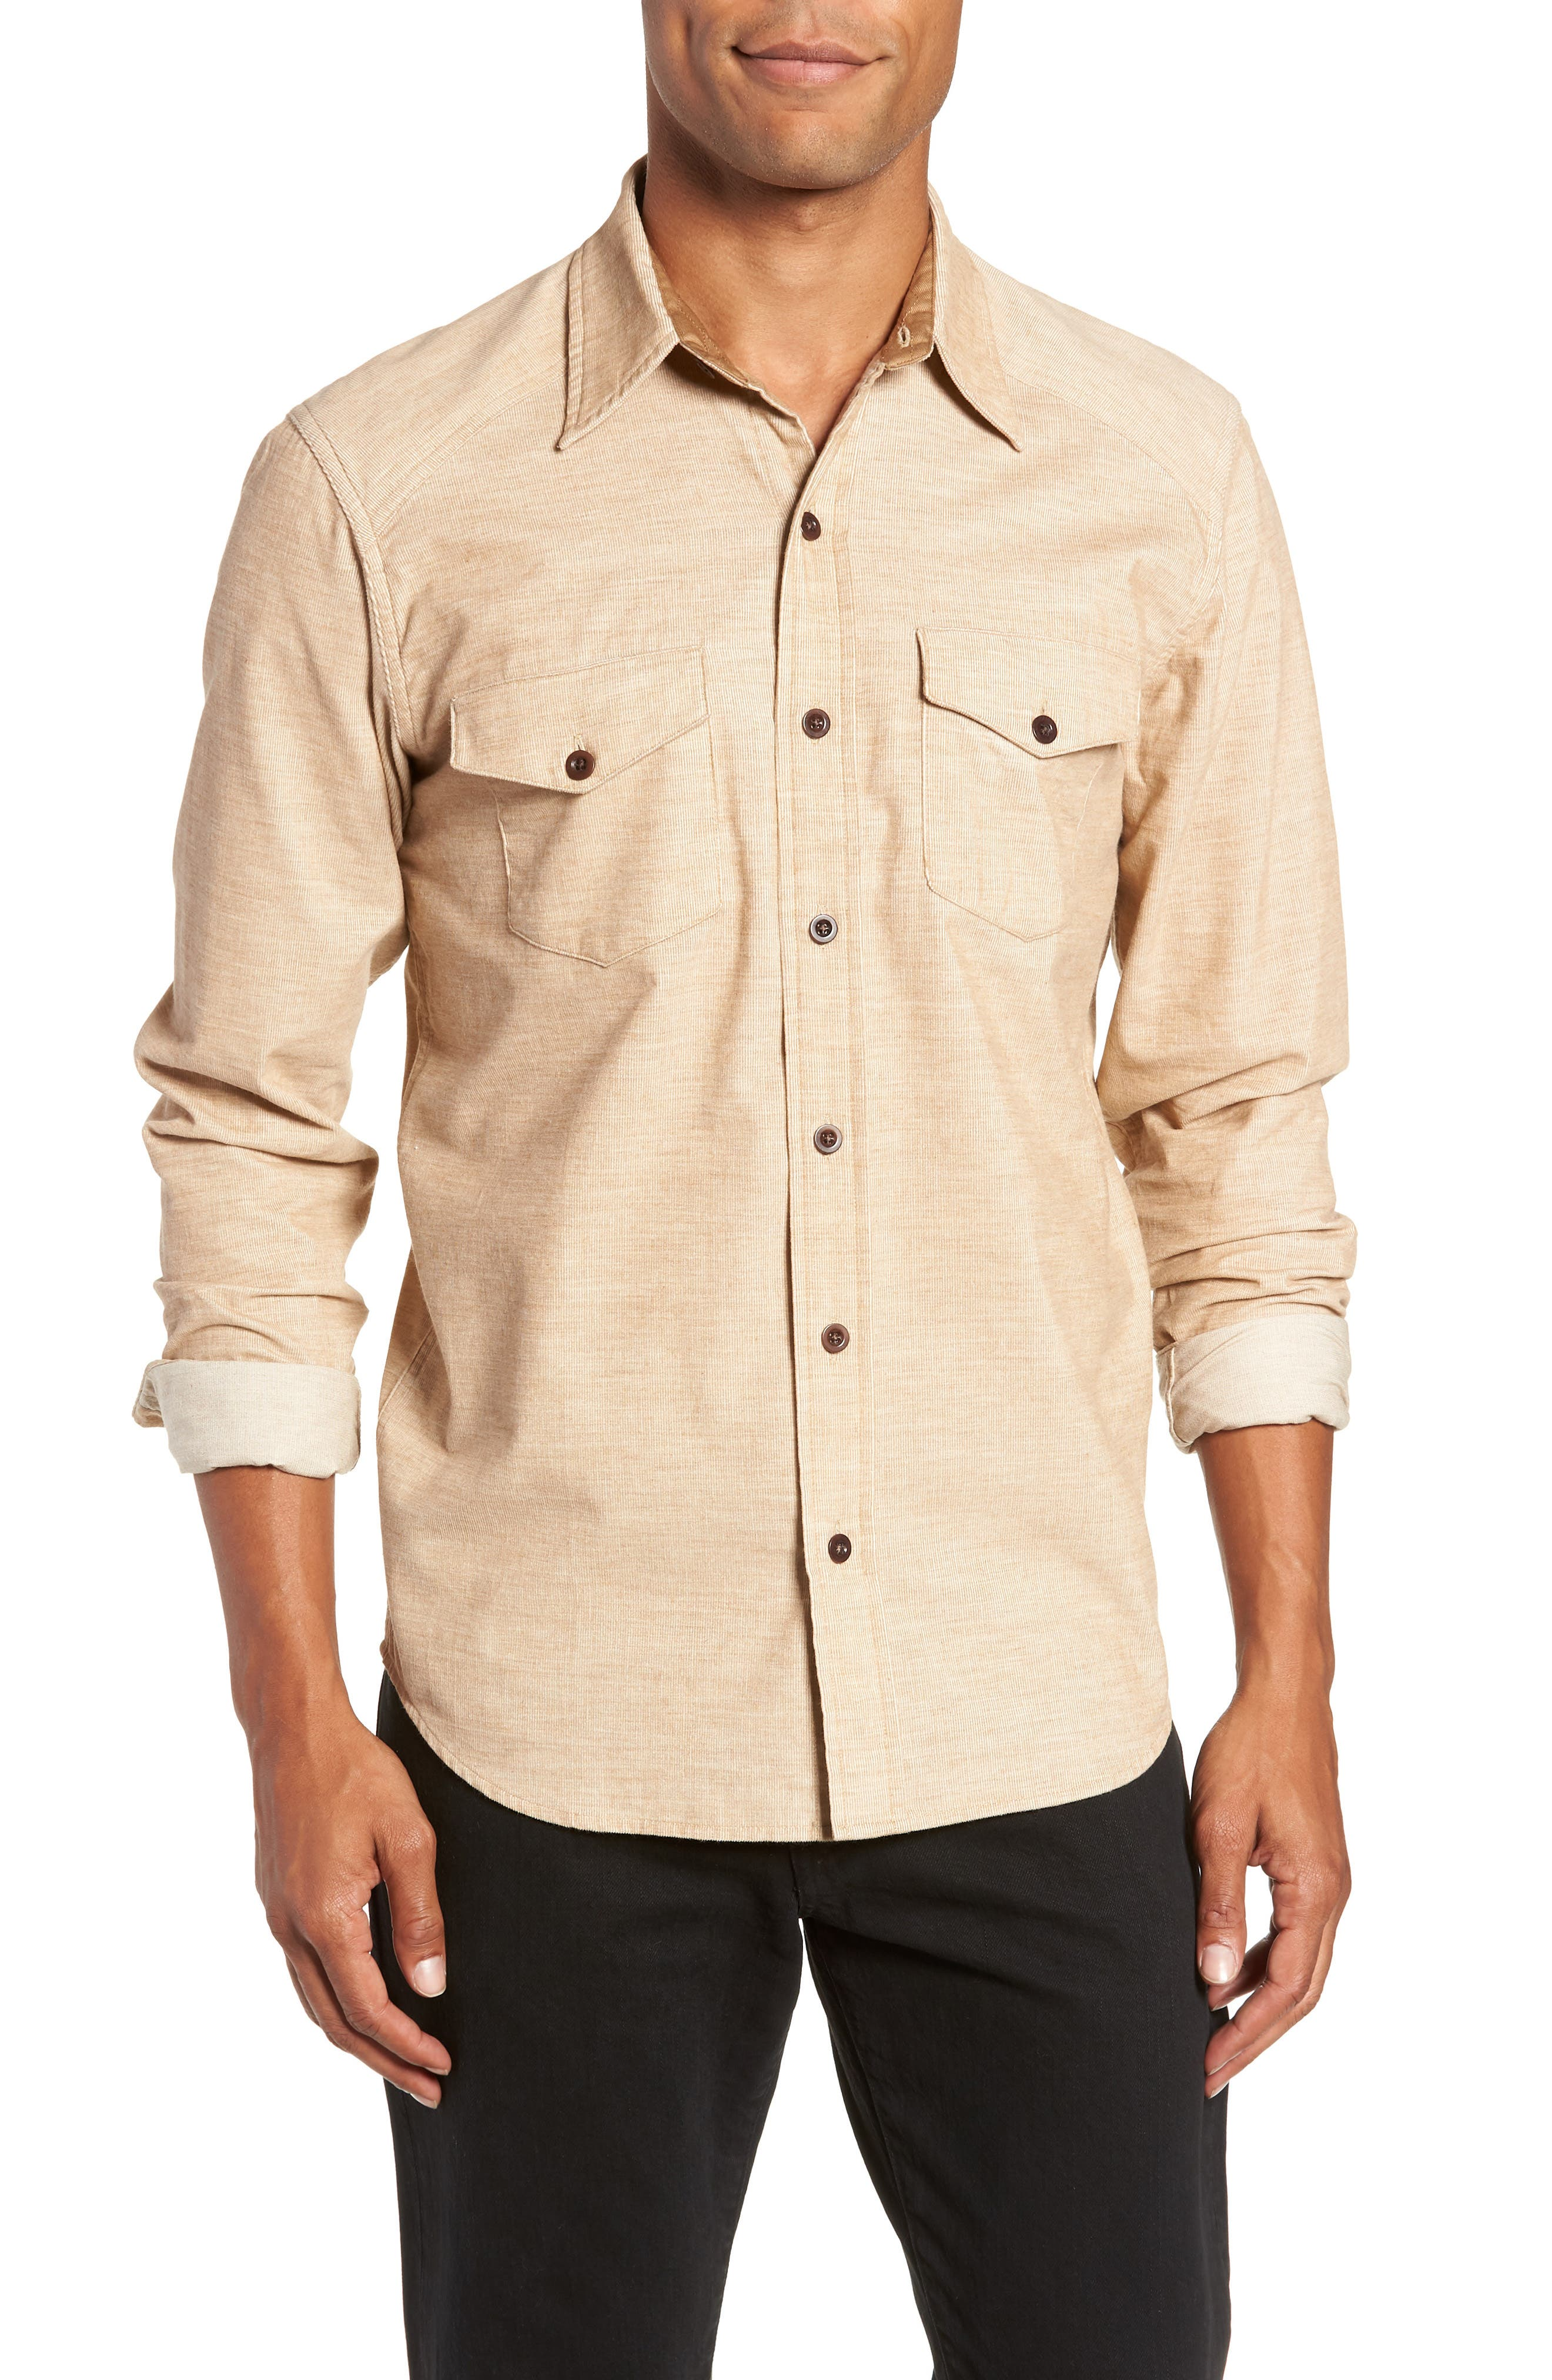 John Addison Engineer Shirt,                         Main,                         color, KHAKI HEATHER